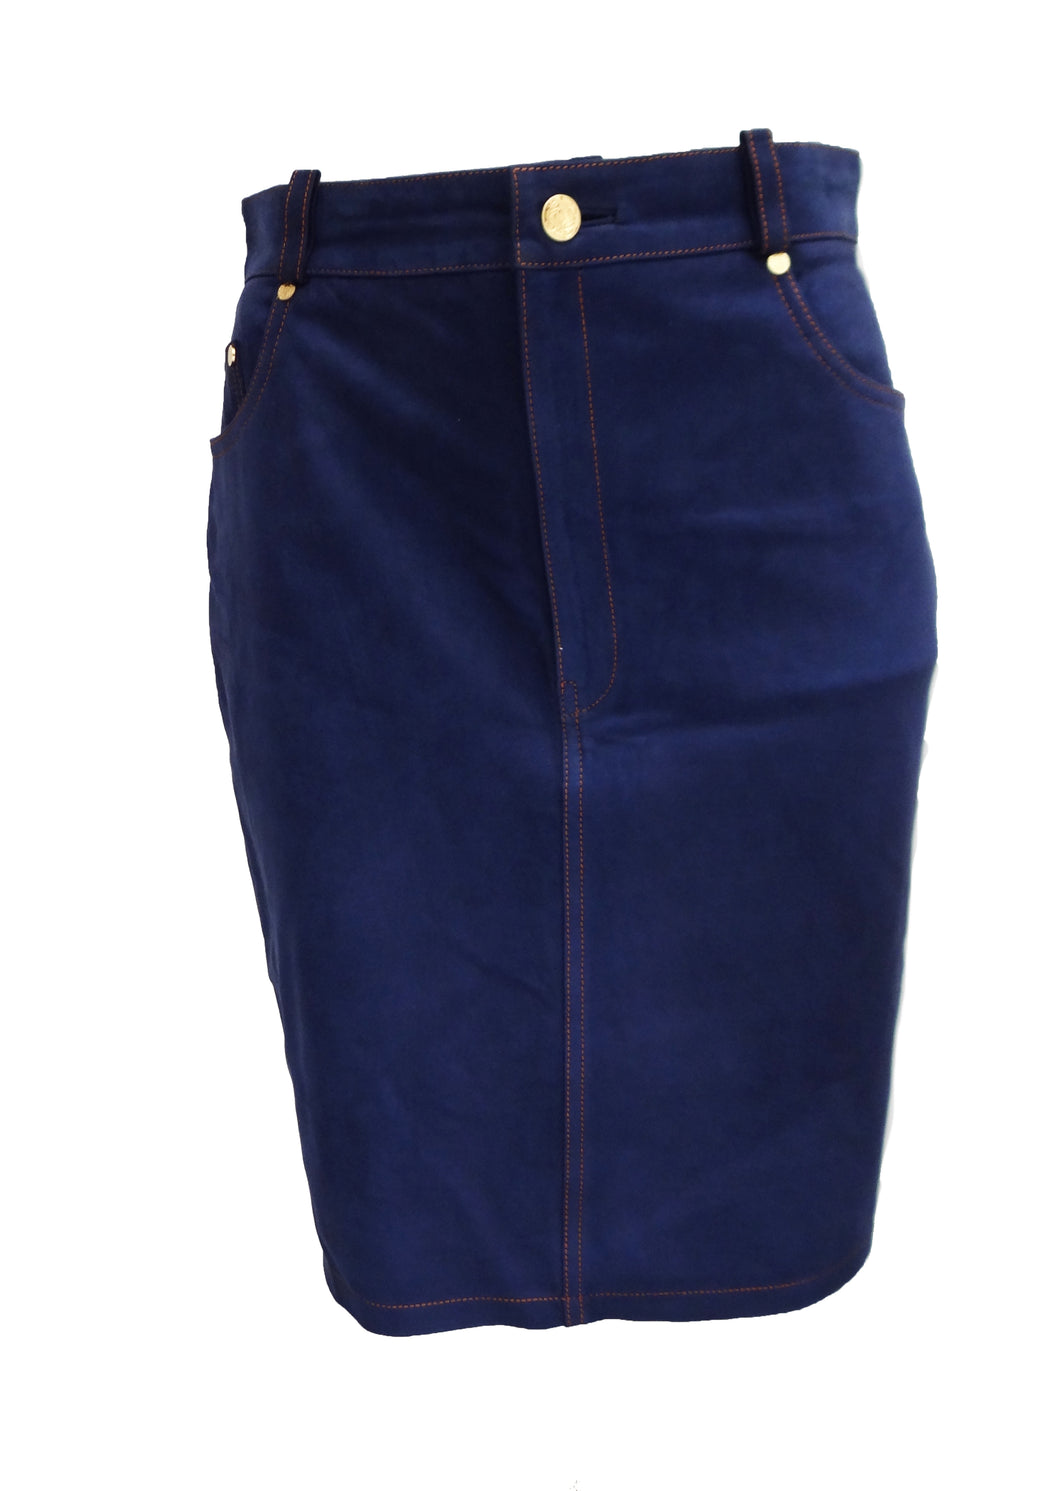 Loewe Nubuck Denim Look Skirt, UK10-12